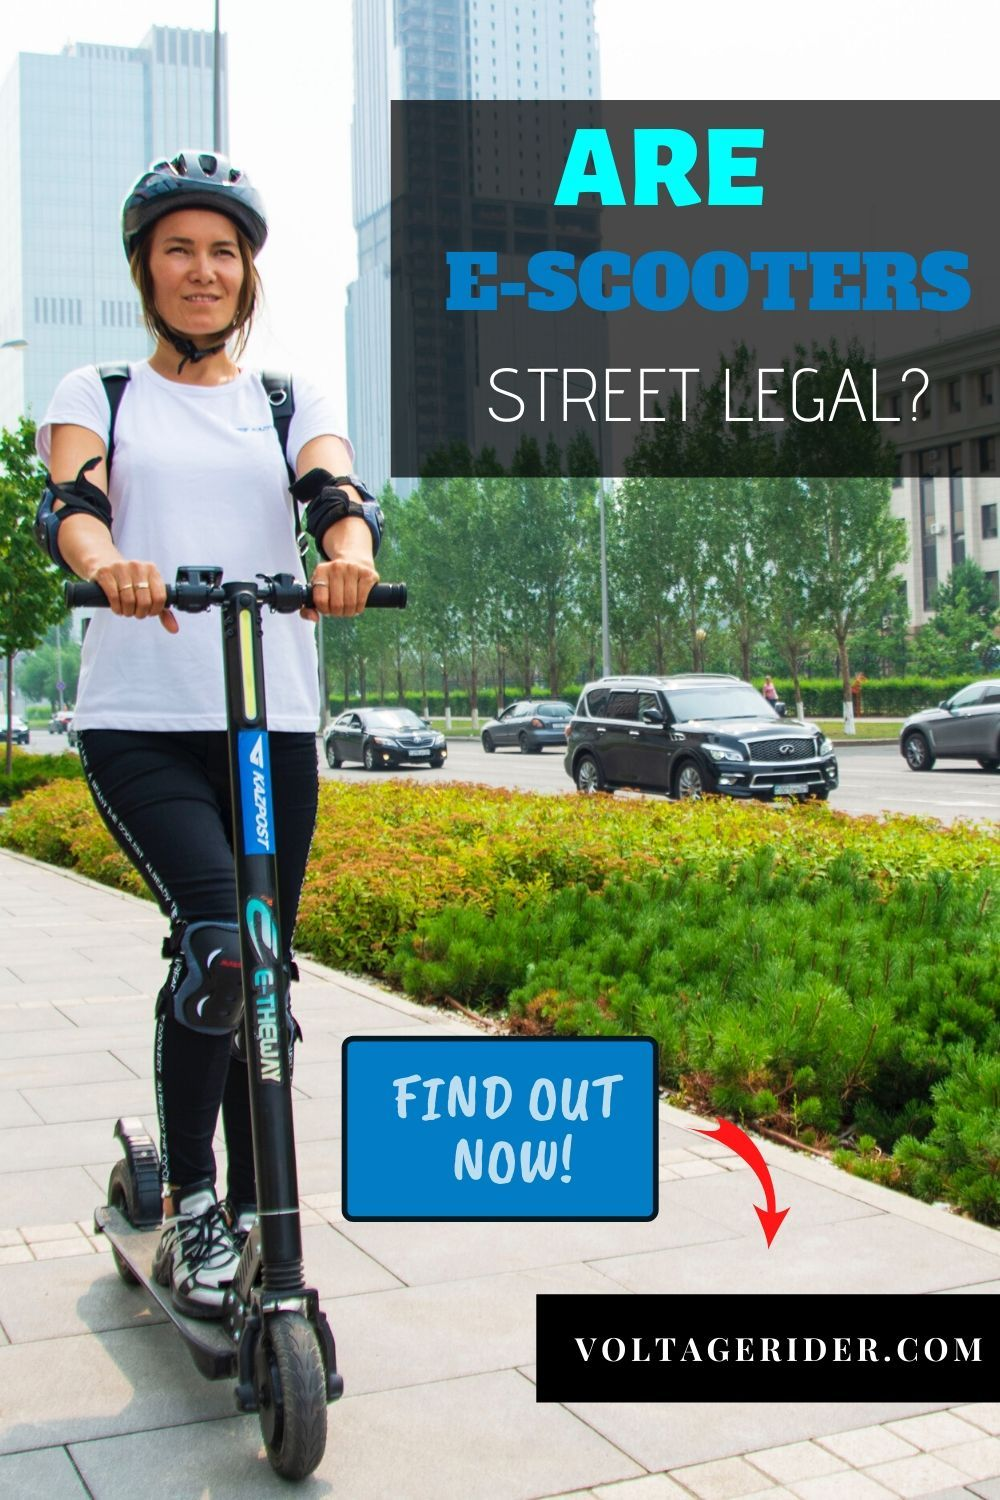 Truth to be told - you're going to pay a ticket if you're cruising around and electric scooters are not legal. You need to be sure if electric scooters are street legal in your are or not. Learn now!  #electricscooter #escooters #electricscooters #escooter #escooterstreetlegal #streetlegalscooter #electricscooterrules #roadlegalescooter #voltagerider #girlsonescooters #escootergirl #urbanmobility #micromobility